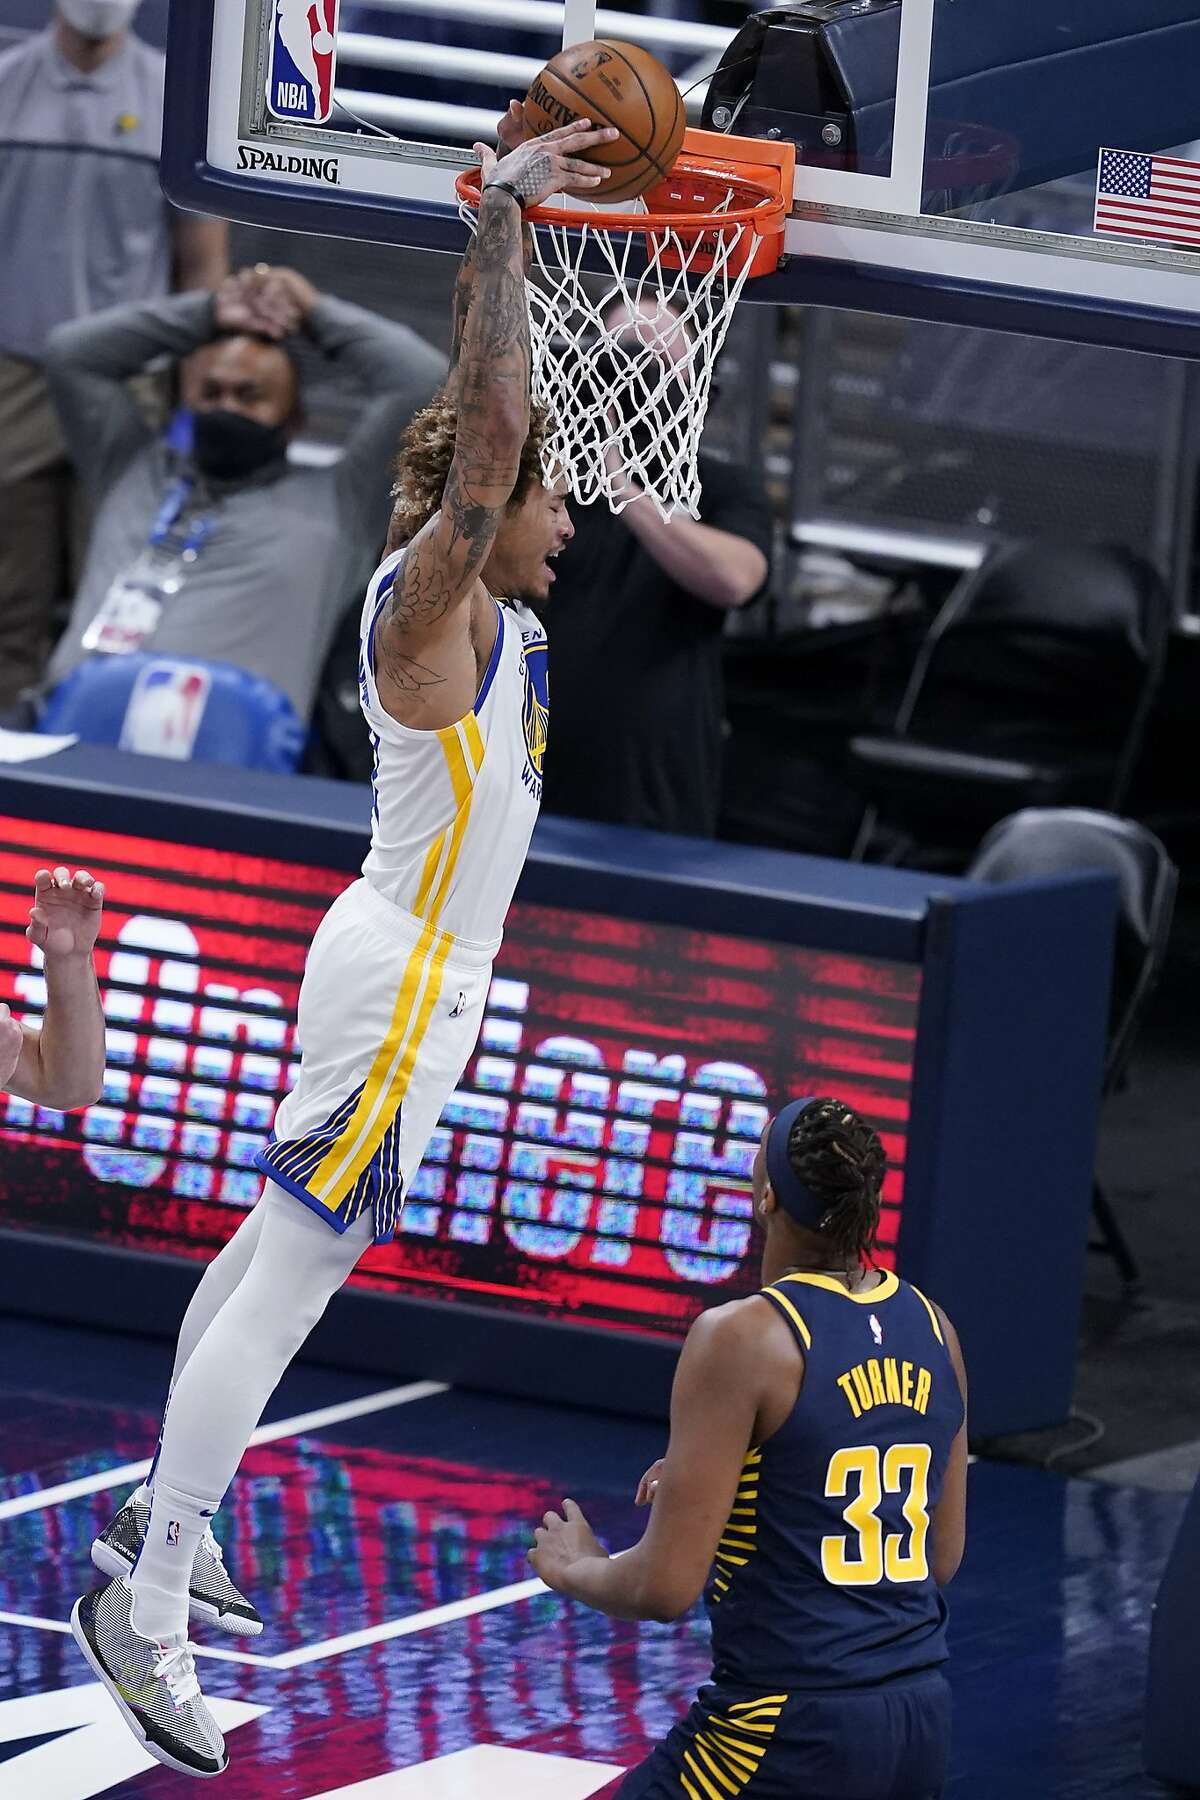 Warriors guard Kelly Oubre Jr. dunks for two of his 17 points as Indiana's Myles Turner watches. Oubre was a plus-10 on the night, tied with Kent Bazemore for the team lead.